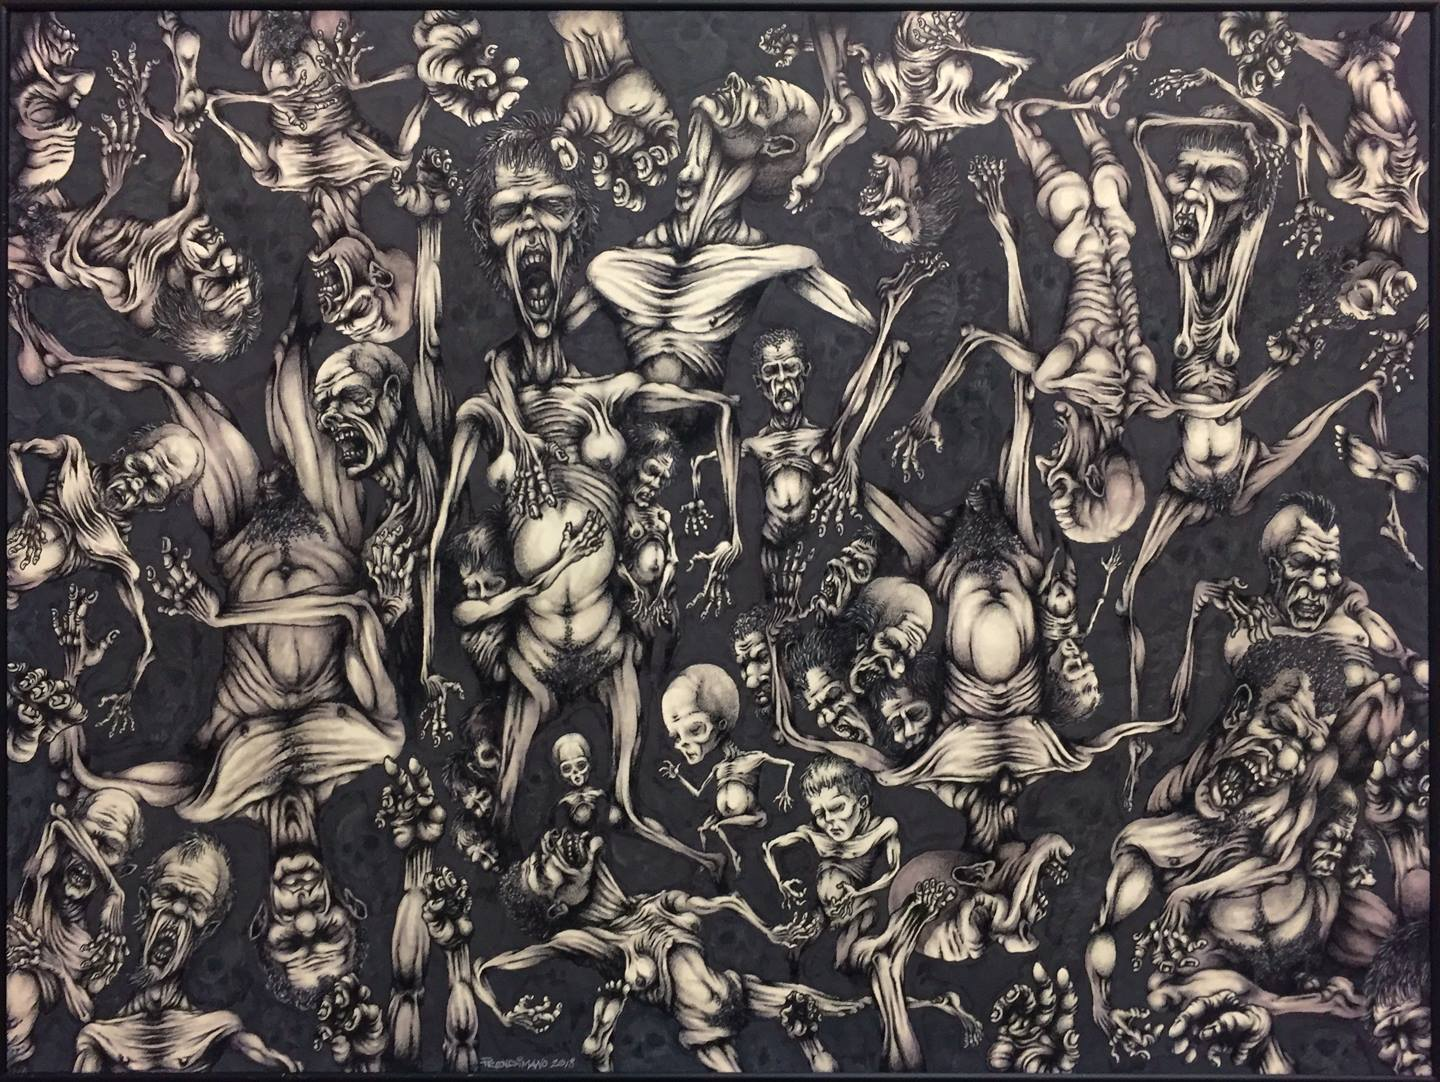 """Andrew Prendimano - """"The History of Empires"""" For Sale: $1,250"""